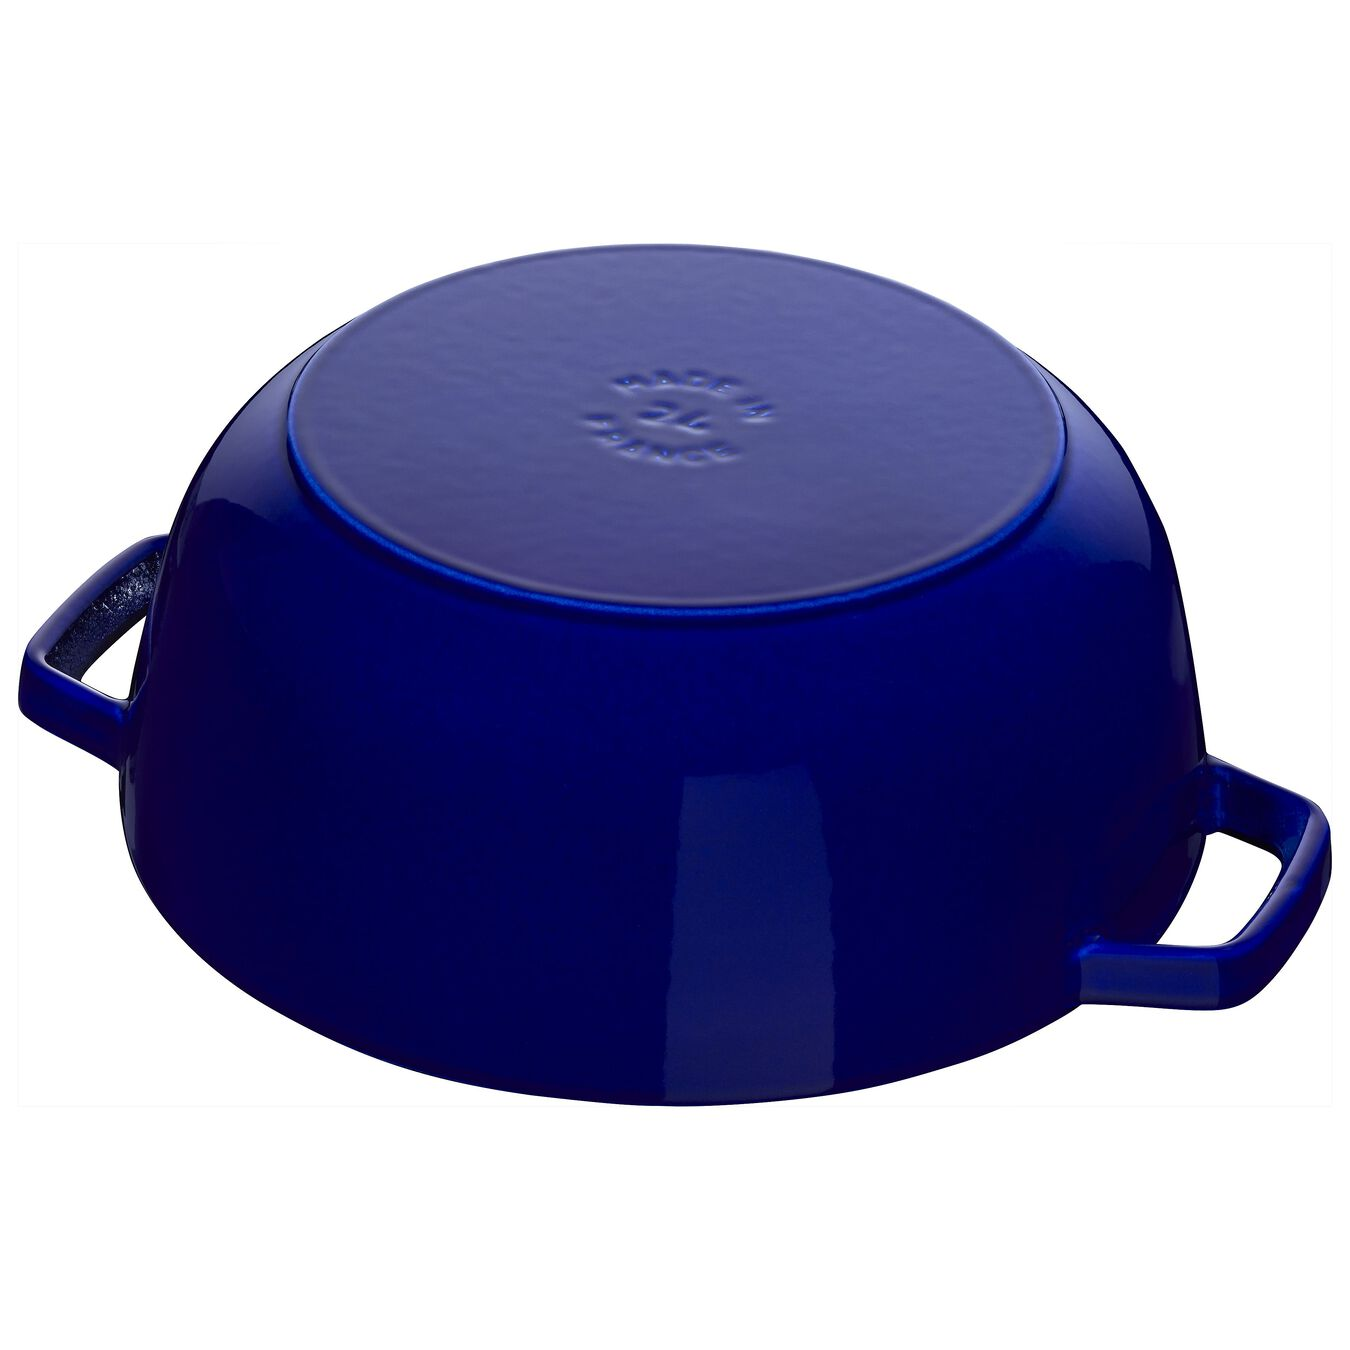 3.6 l round French Oven, lily decal, dark-blue,,large 4